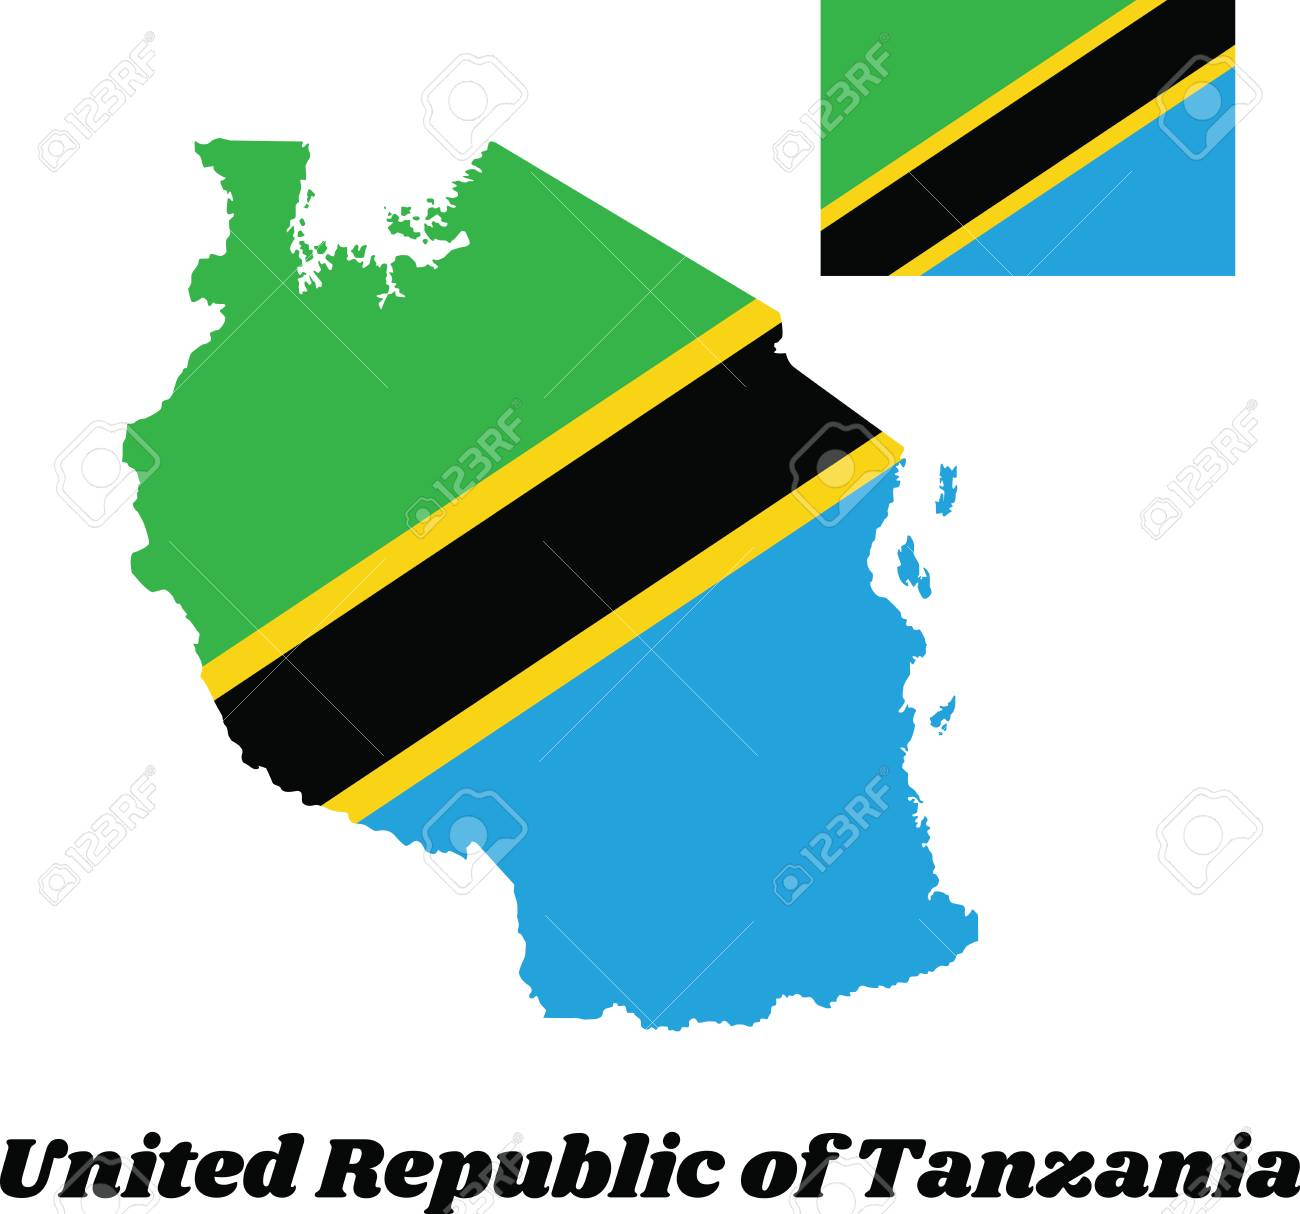 Map outline and flag of Tanzania, A yellow-edged black diagonal